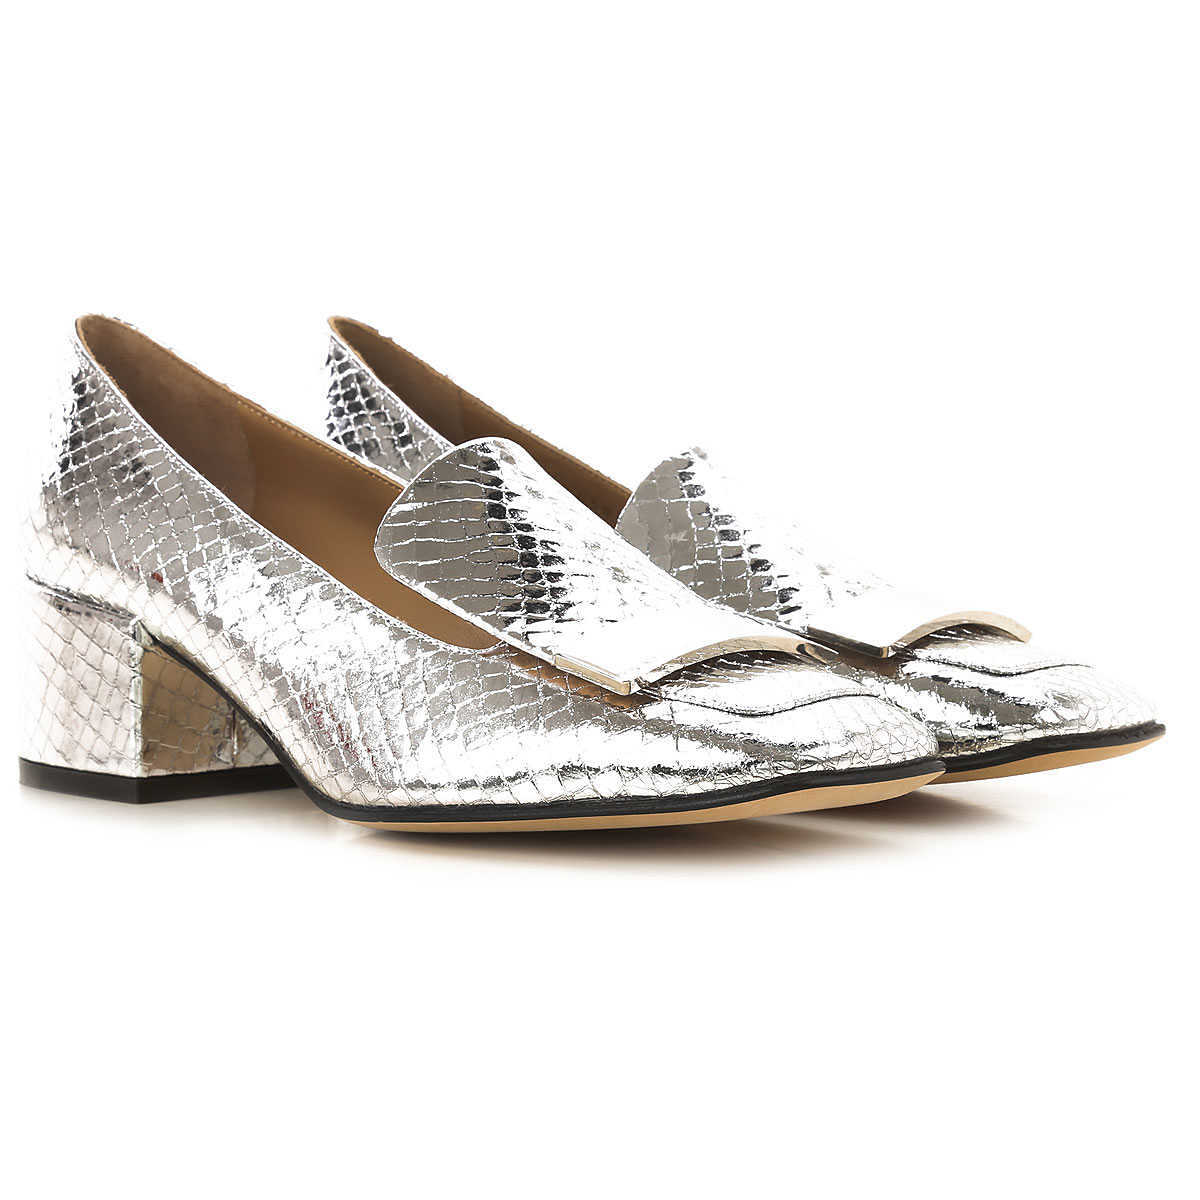 Sergio Rossi Loafers for Women Silver Canada - GOOFASH - Womens FLAT SHOES